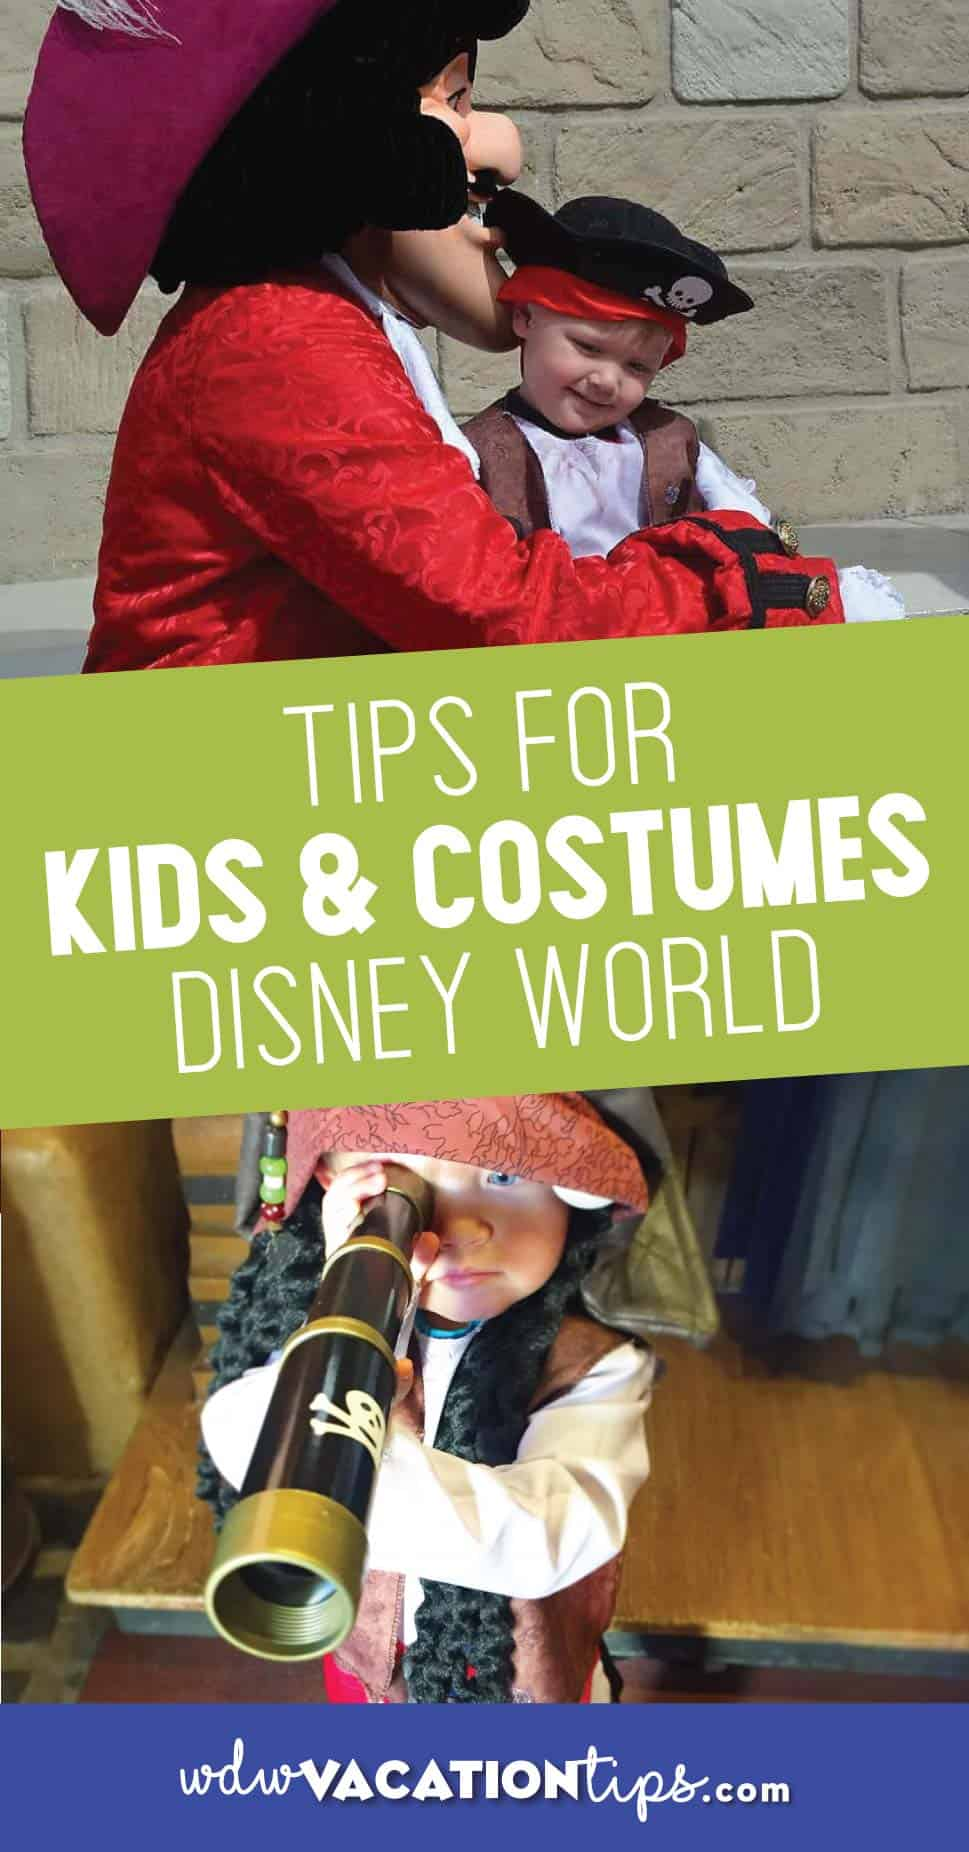 Tips for kids costumes at Disney World